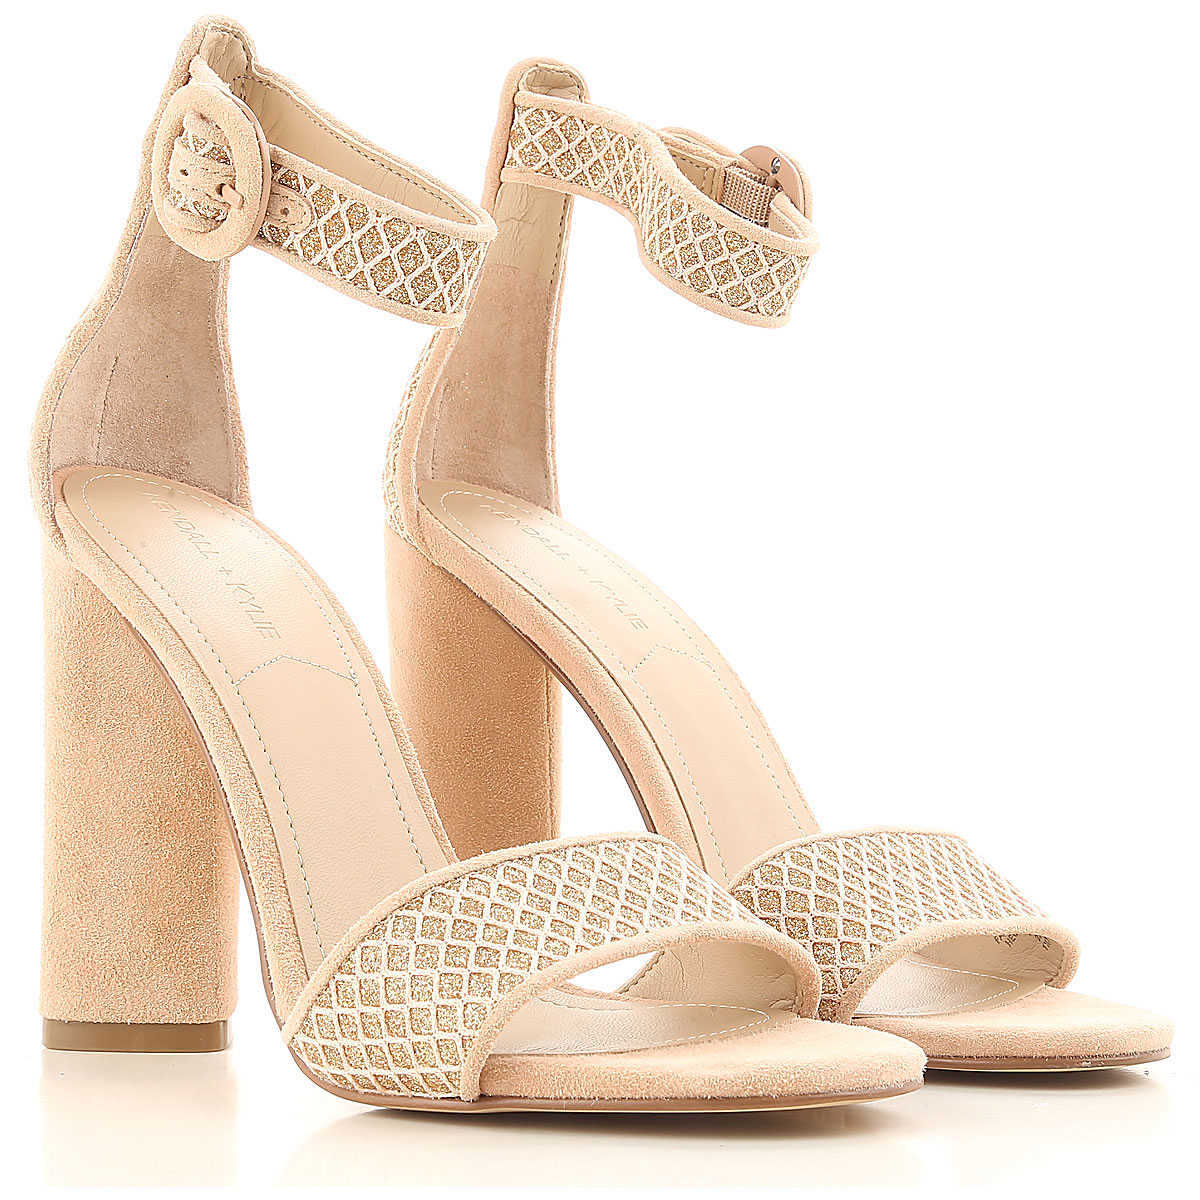 Kendall Kylie Sandals for Women On Sale in Outlet Light Pink UK - GOOFASH